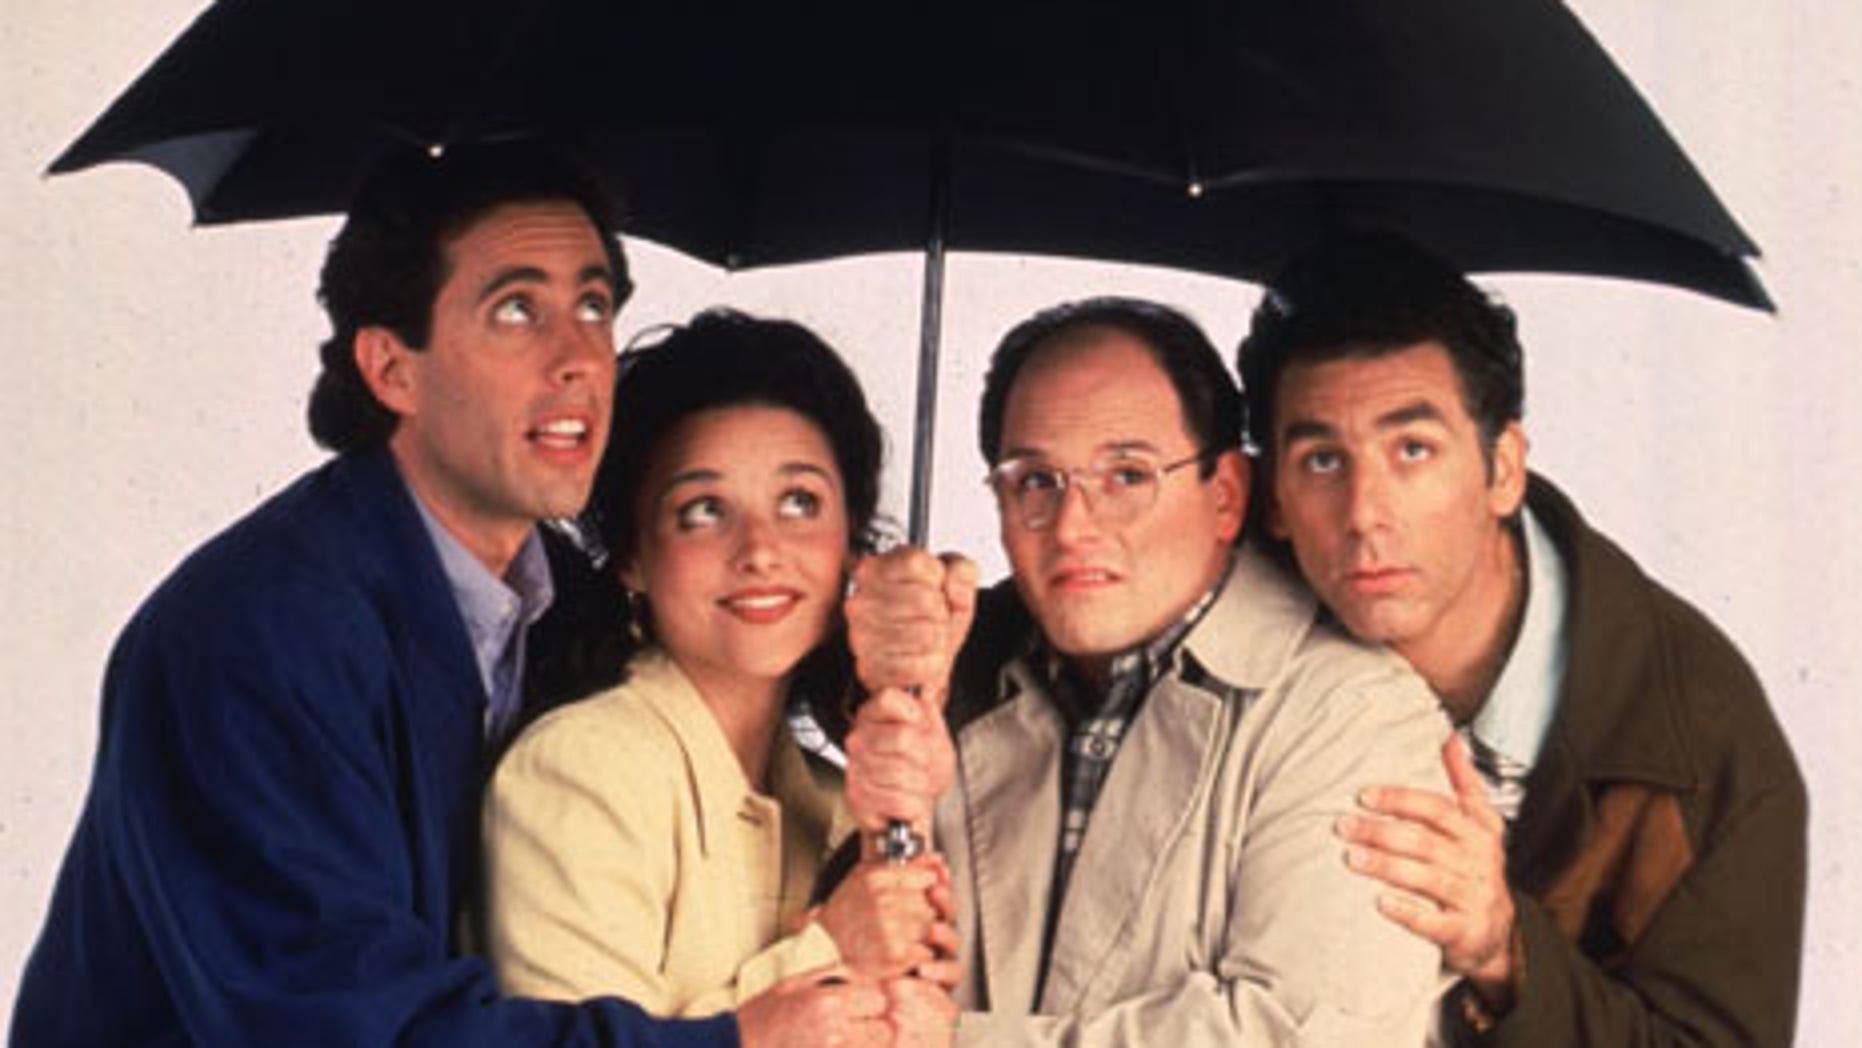 """The stars of the television series """"Seinfeld"""" are shown in this undated publicity photograph. Shown (L-R): Jerry Seinfeld, Julia Louis Dreyfuss, Jason Alexander and Michael Richards. """"Seinfeld"""" will end its successful run on the NBC network in a series finale May 14.FSP/SV - RTRDU81"""